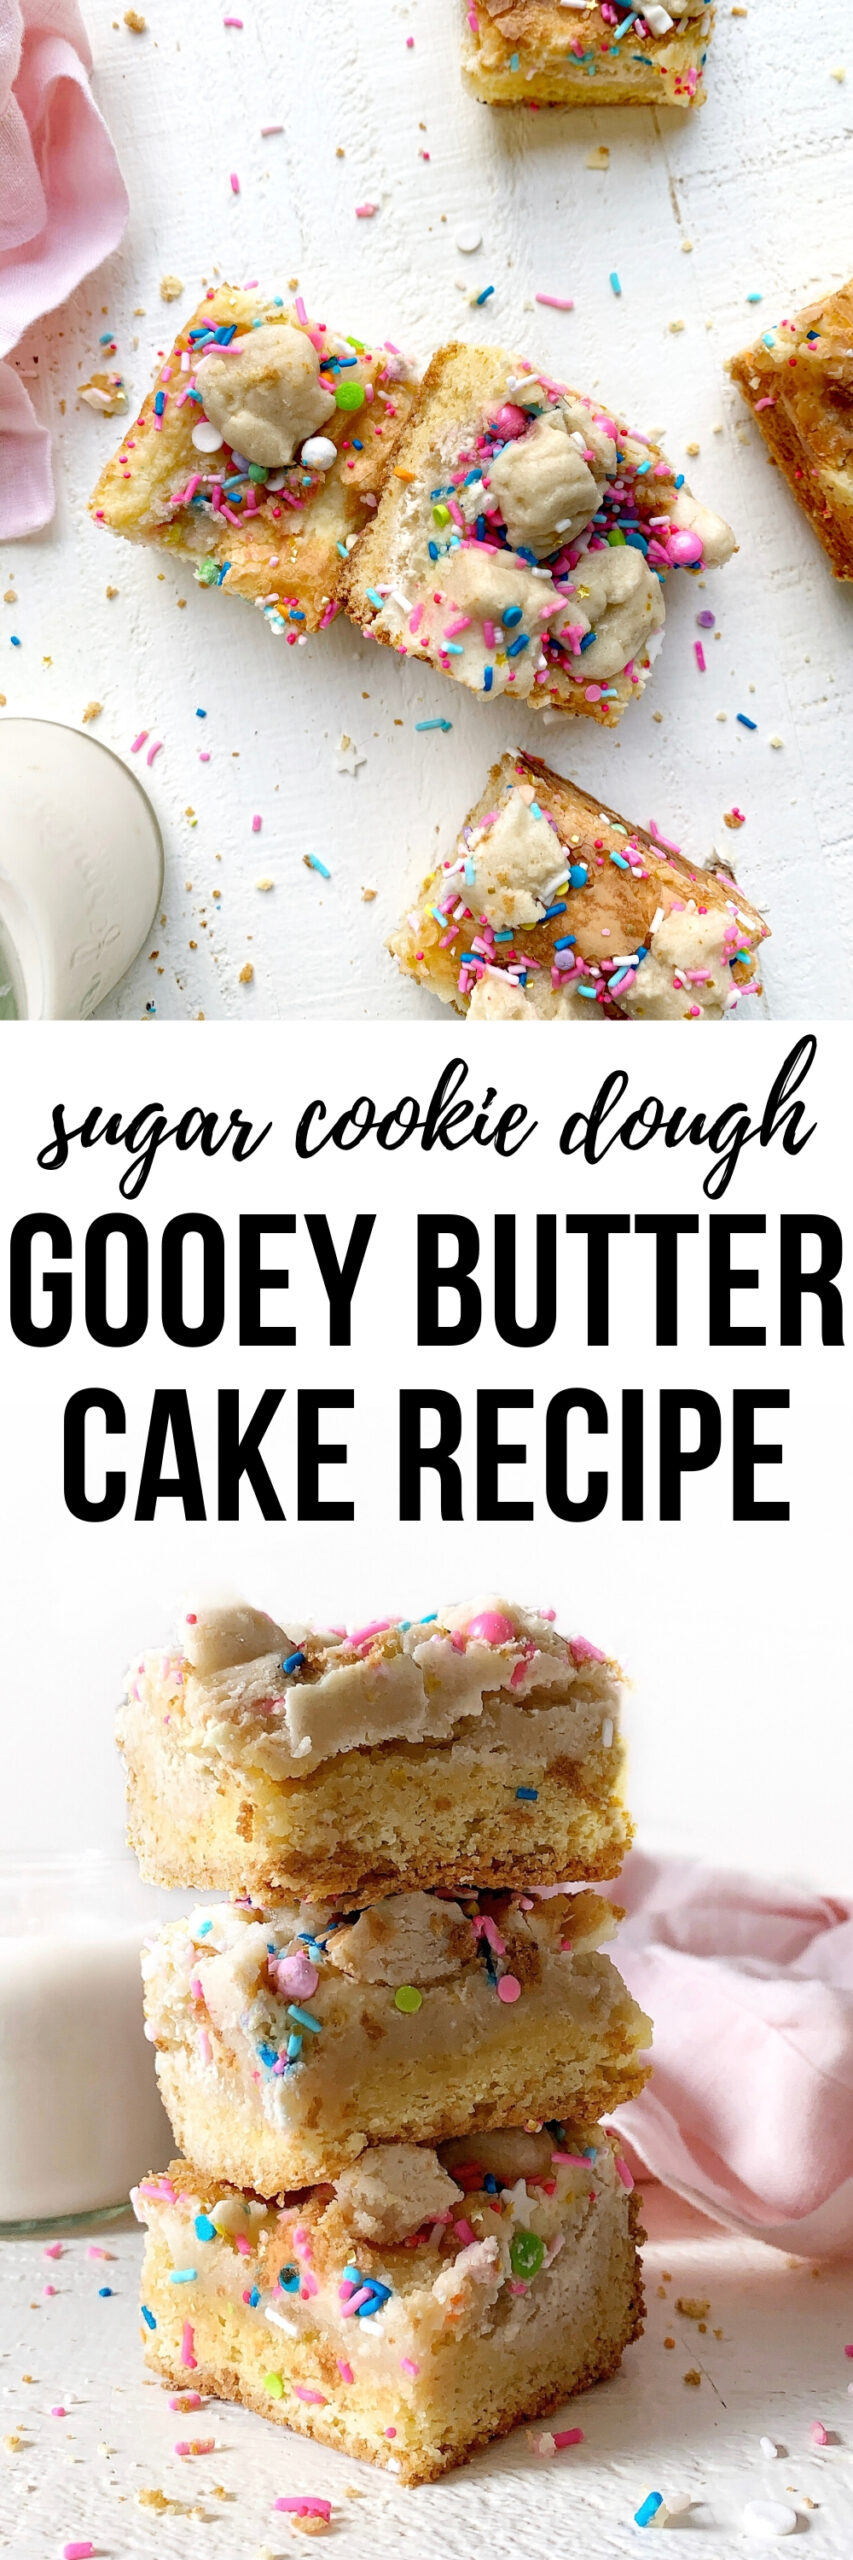 sugar cookie dough gooey butter cake recipe